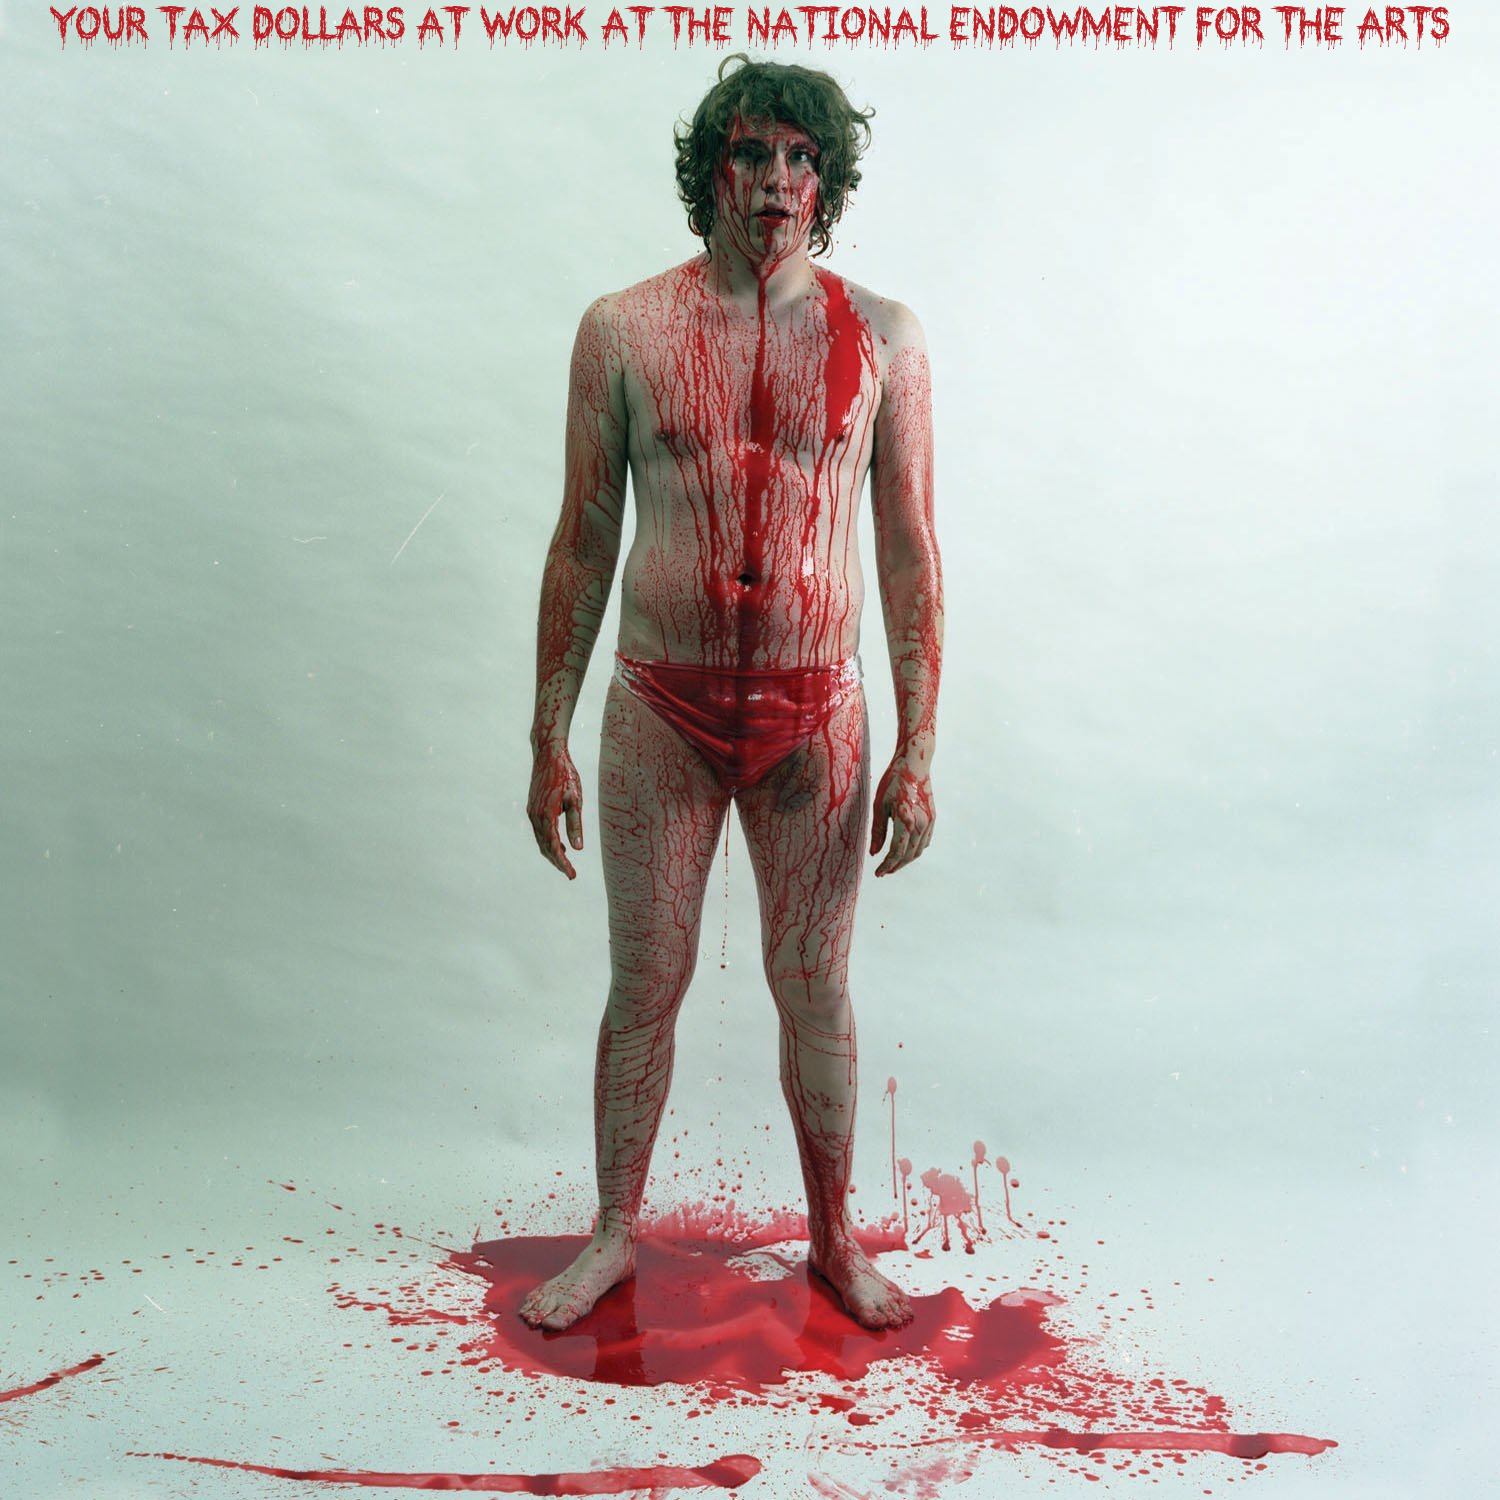 Album cover parody of Blood Visions [Vinyl] by Jay Reatard